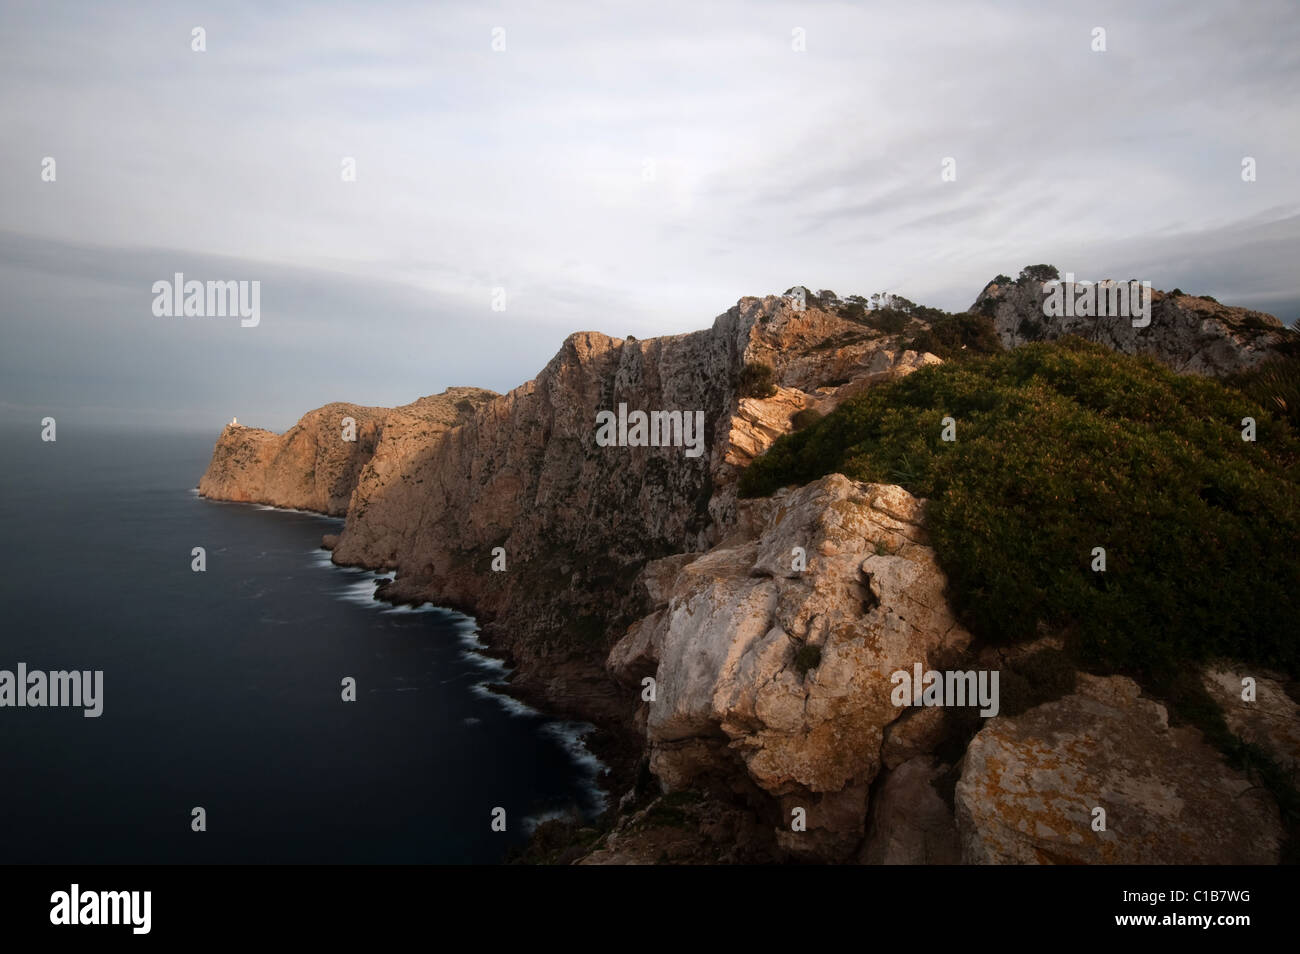 view from punta tomas to cap de formentor with lighthouse, Mallorca, Spain - Stock Image